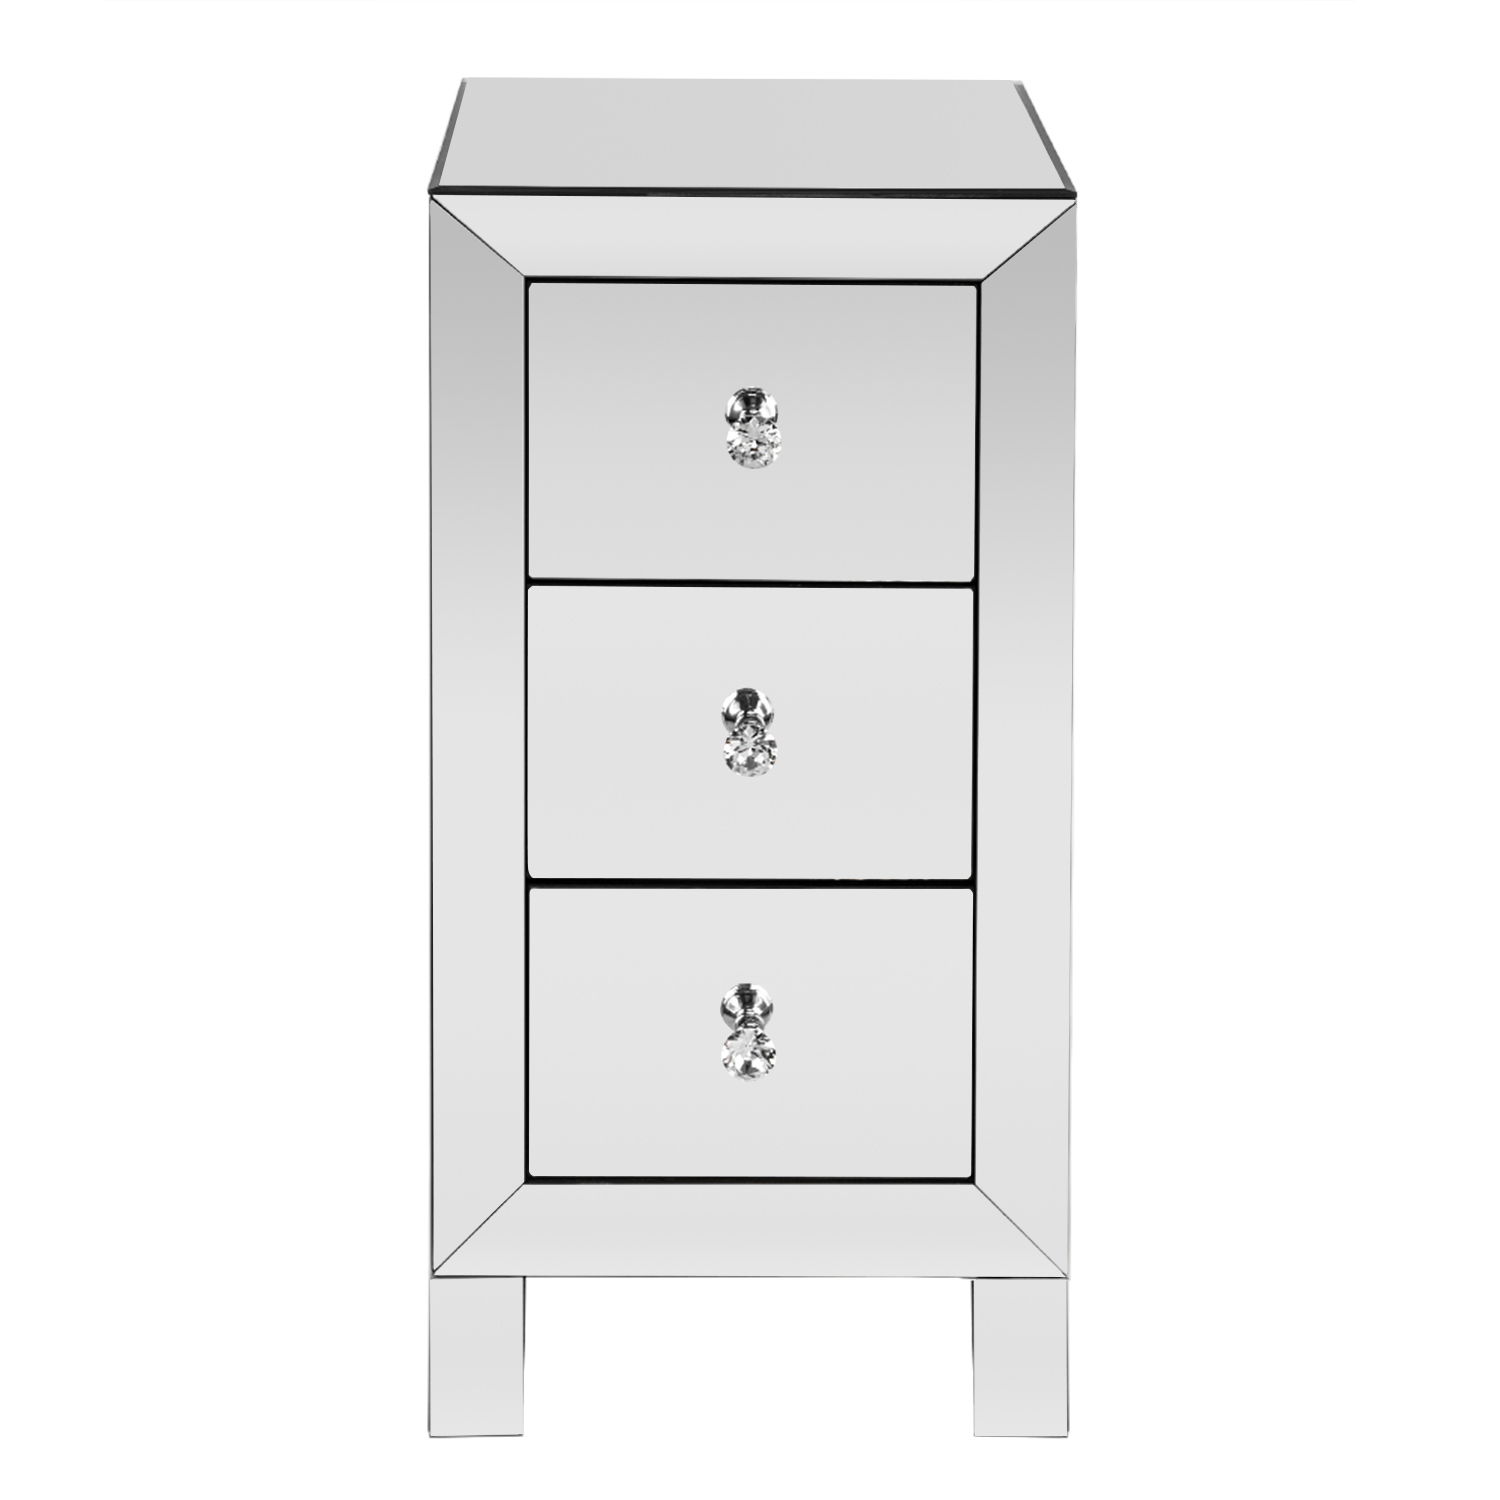 Details About Mirrored 3 Drawer End Table Sofa Table Silver Glass Nightstand Furniture